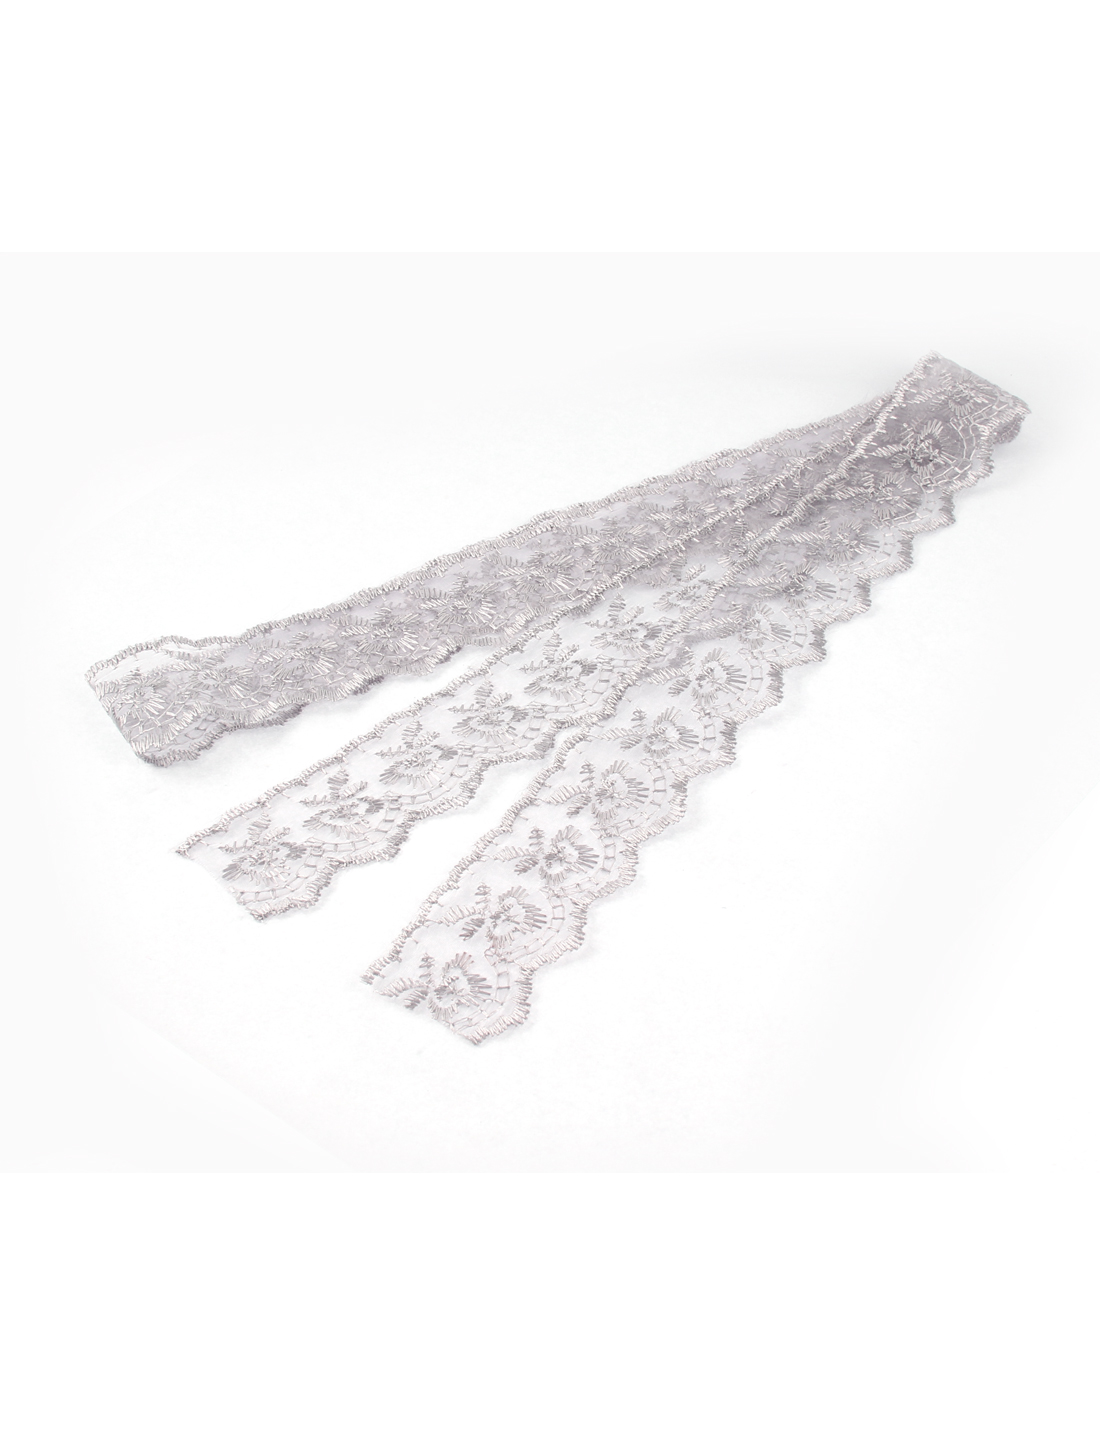 Bridal Wedding Lace Trim Ribbon Gray 1M 3.3Ft Long 4.5cm Width